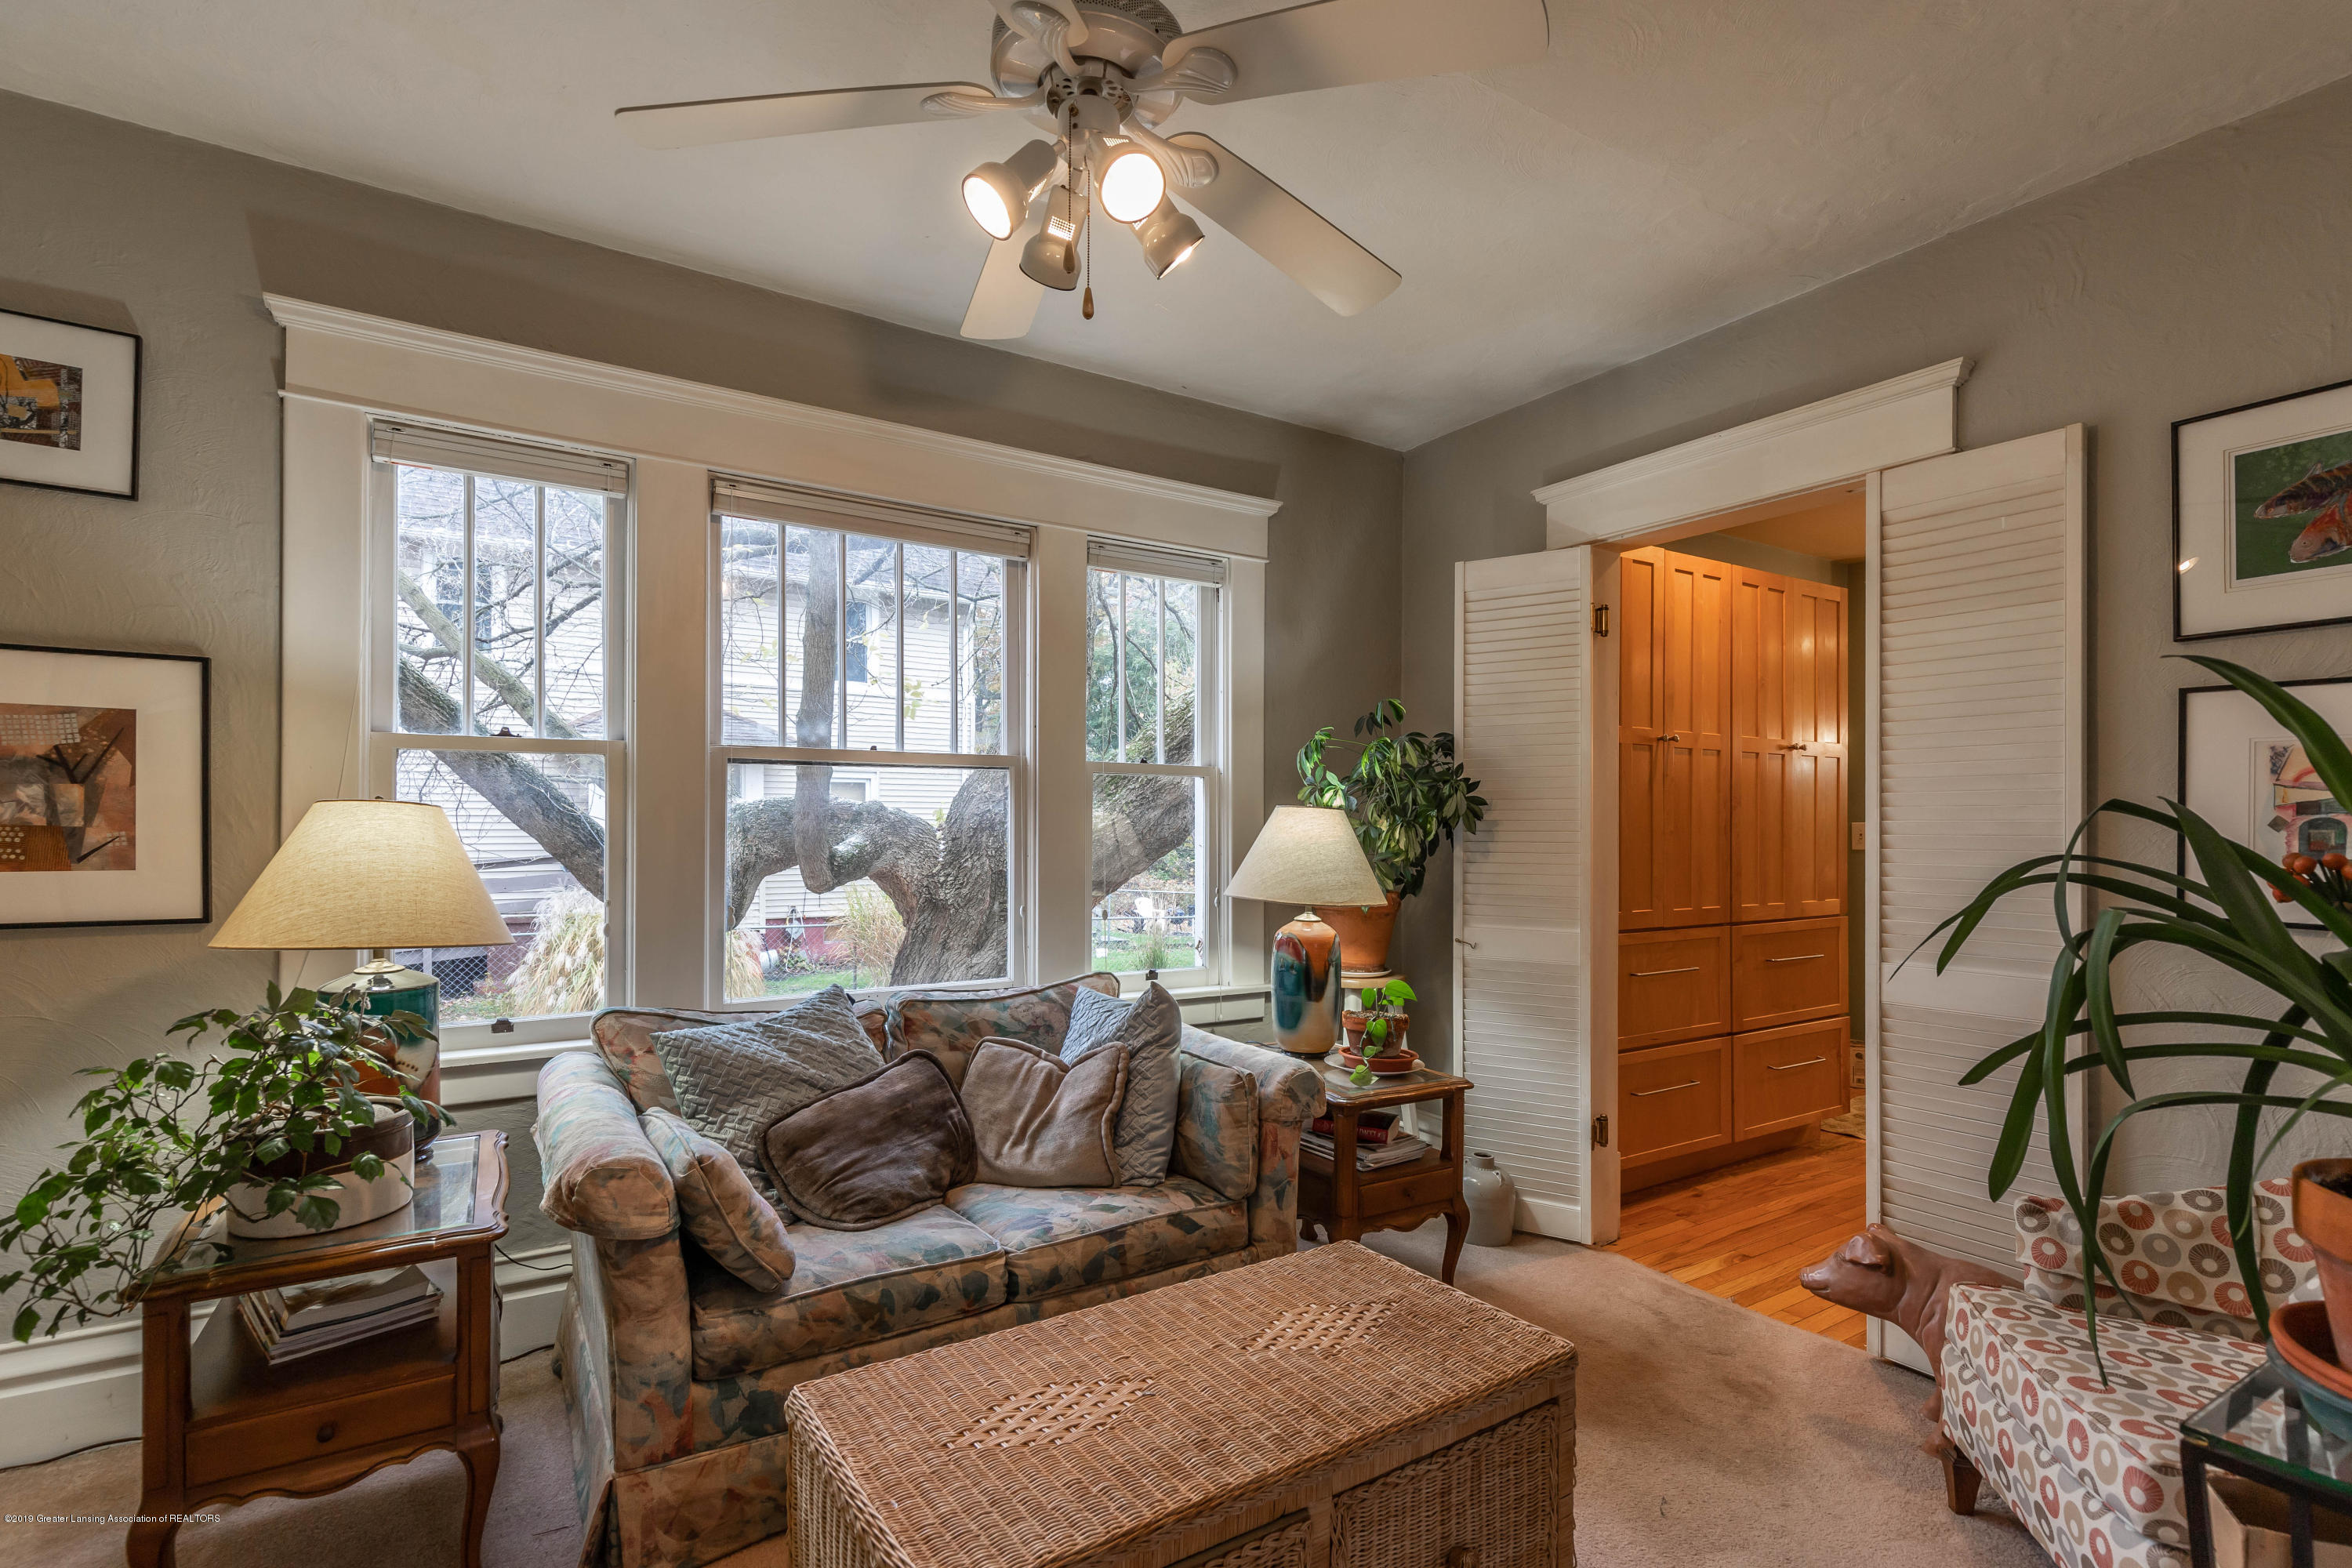 114 S Foster Ave - Parlor - 4